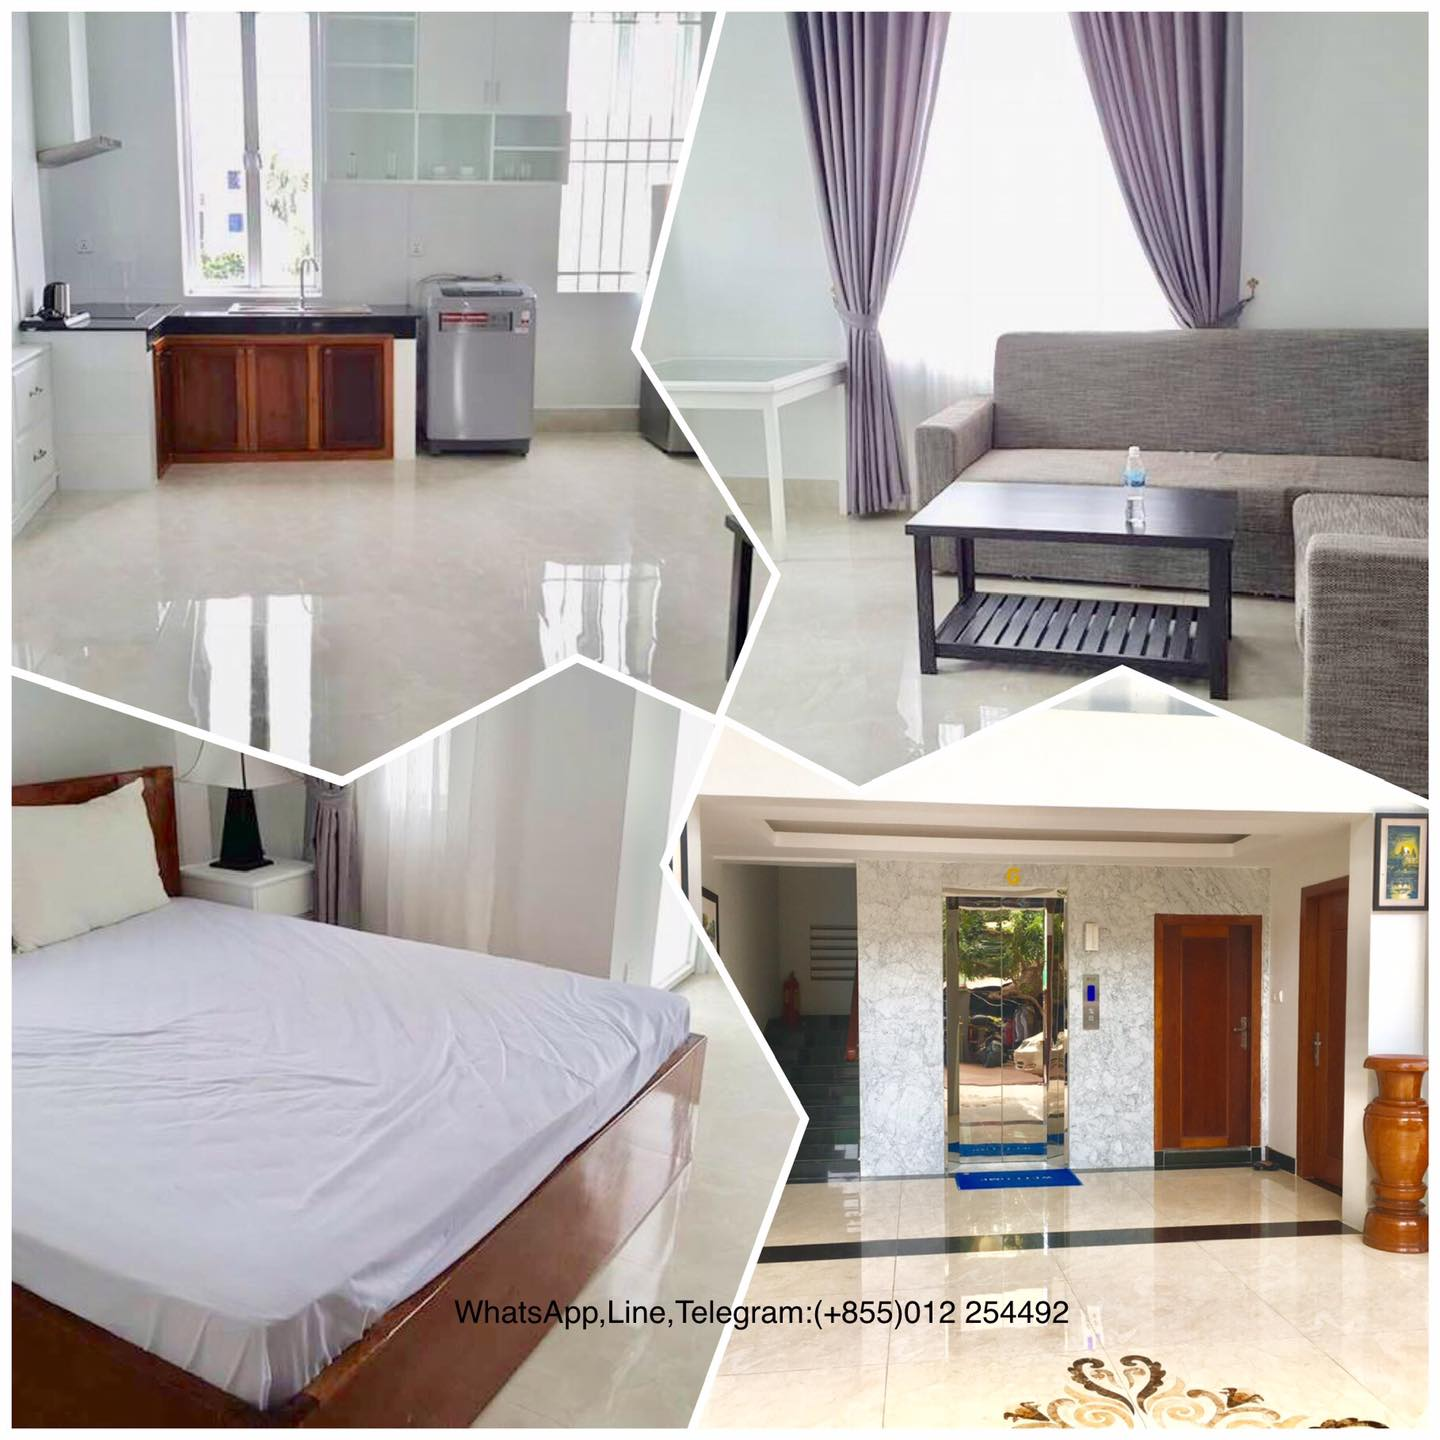 1 Bed 1 Bath Modern Western Elevator Apartment for Rent in Phnom Penh,Russian Market